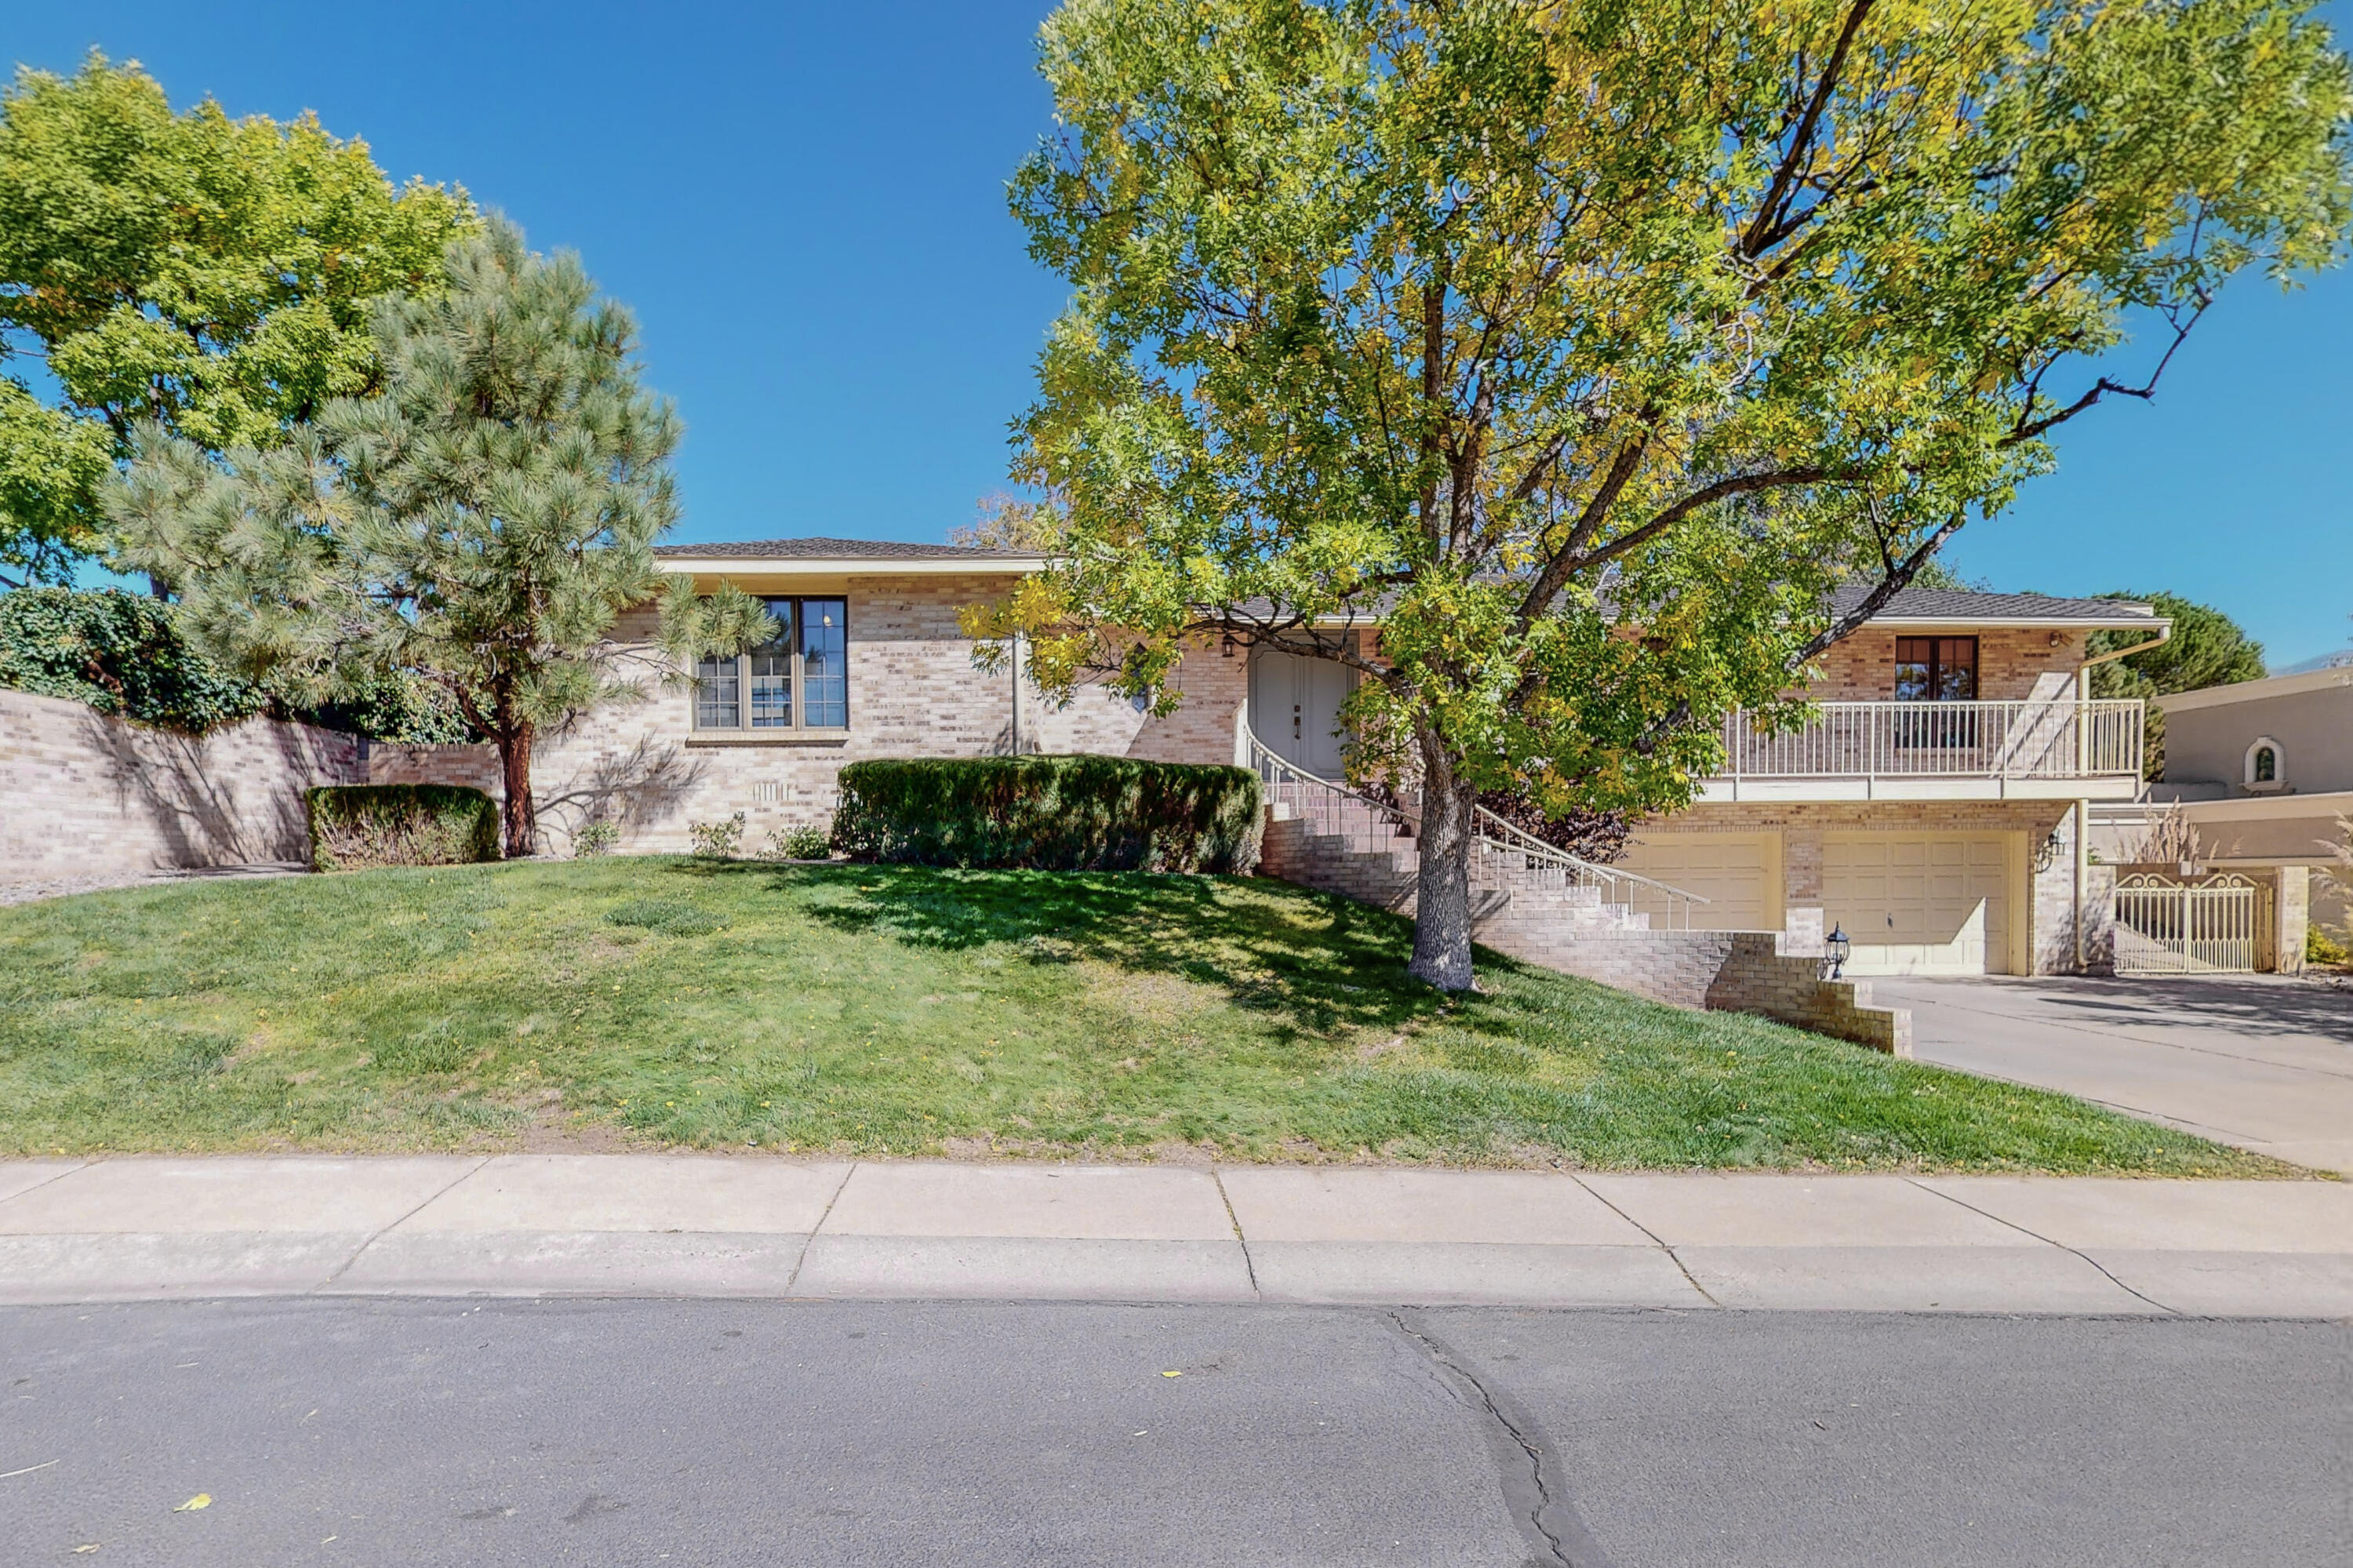 Looking for a great home in a gated , neighborhood?   Come this well kept 3329 sf home , 5 bedroom, 3 bath, two level home on a large .25 acre lot in the Tanoan neighborhood with REAL people at gate 24/7.  House has 3 living areas including formal LR/DR & family room on the main level plus bedroom, den/ exercise room & 3/4 bath on the lower level. Great separation of space for guests or family members.  Updated stainless steel appliances in kitchen. All 3 baths recently remodeled. Huge covered porch  overlooking a grassy lawn & mature trees works well for shaded entertaining or relaxation. Quiet location on a  cul de sac. Golf, pool, tennis & dining close by at optional country club.  OPEN HOUSE Sun 10/24 1:00-3:00.